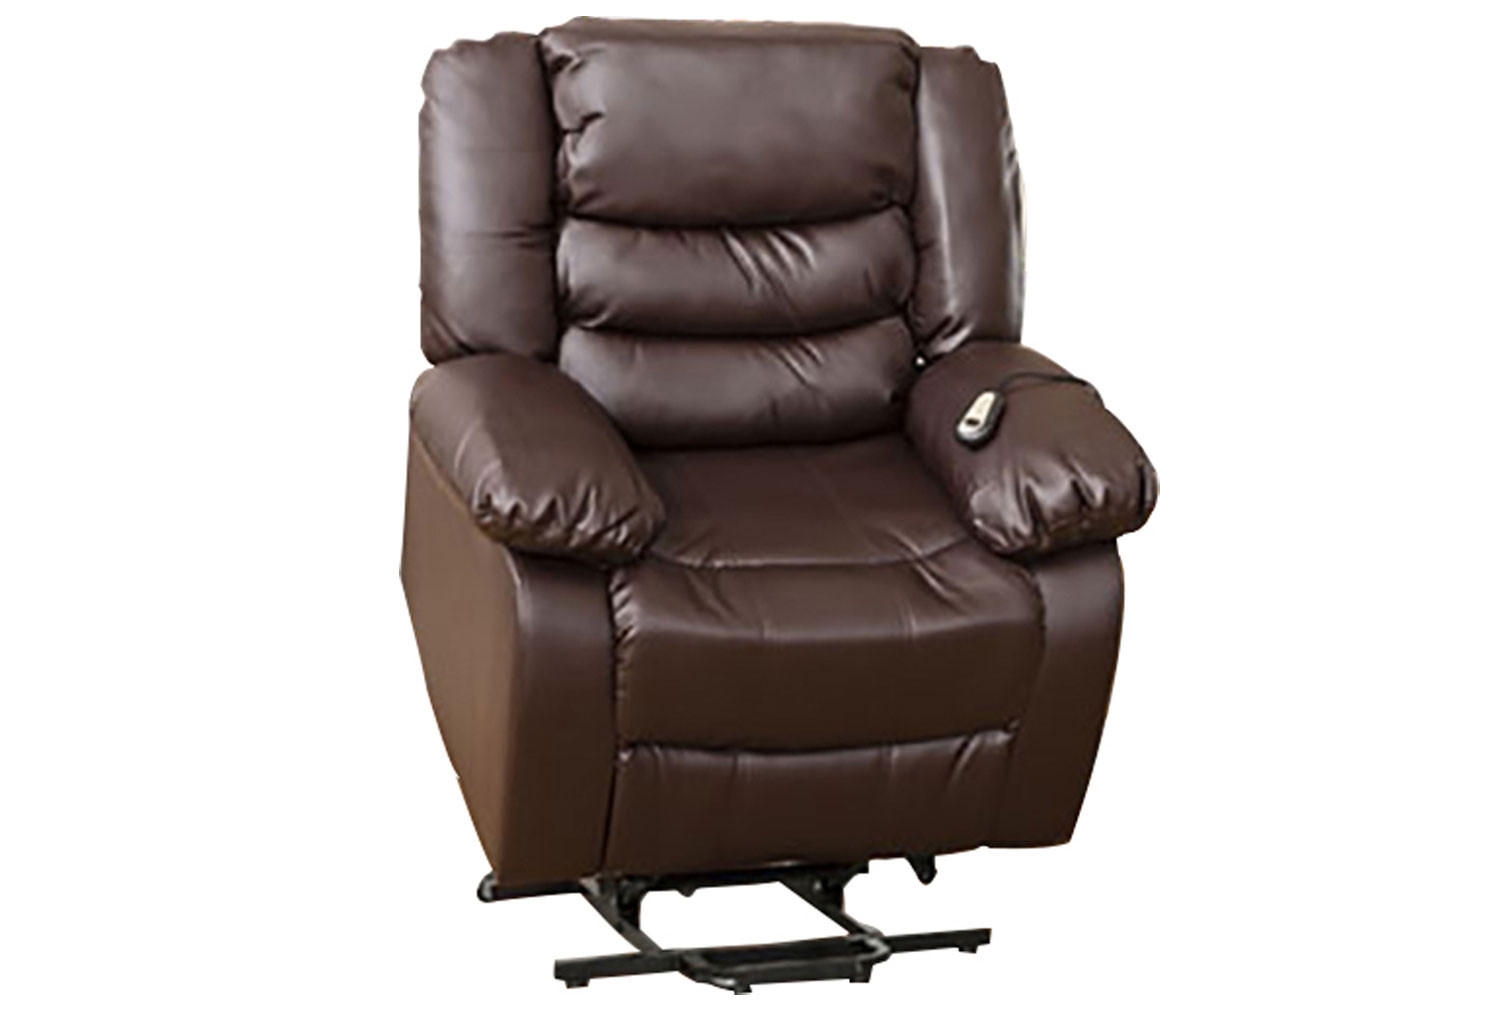 Buet Leather Recliner Armchair